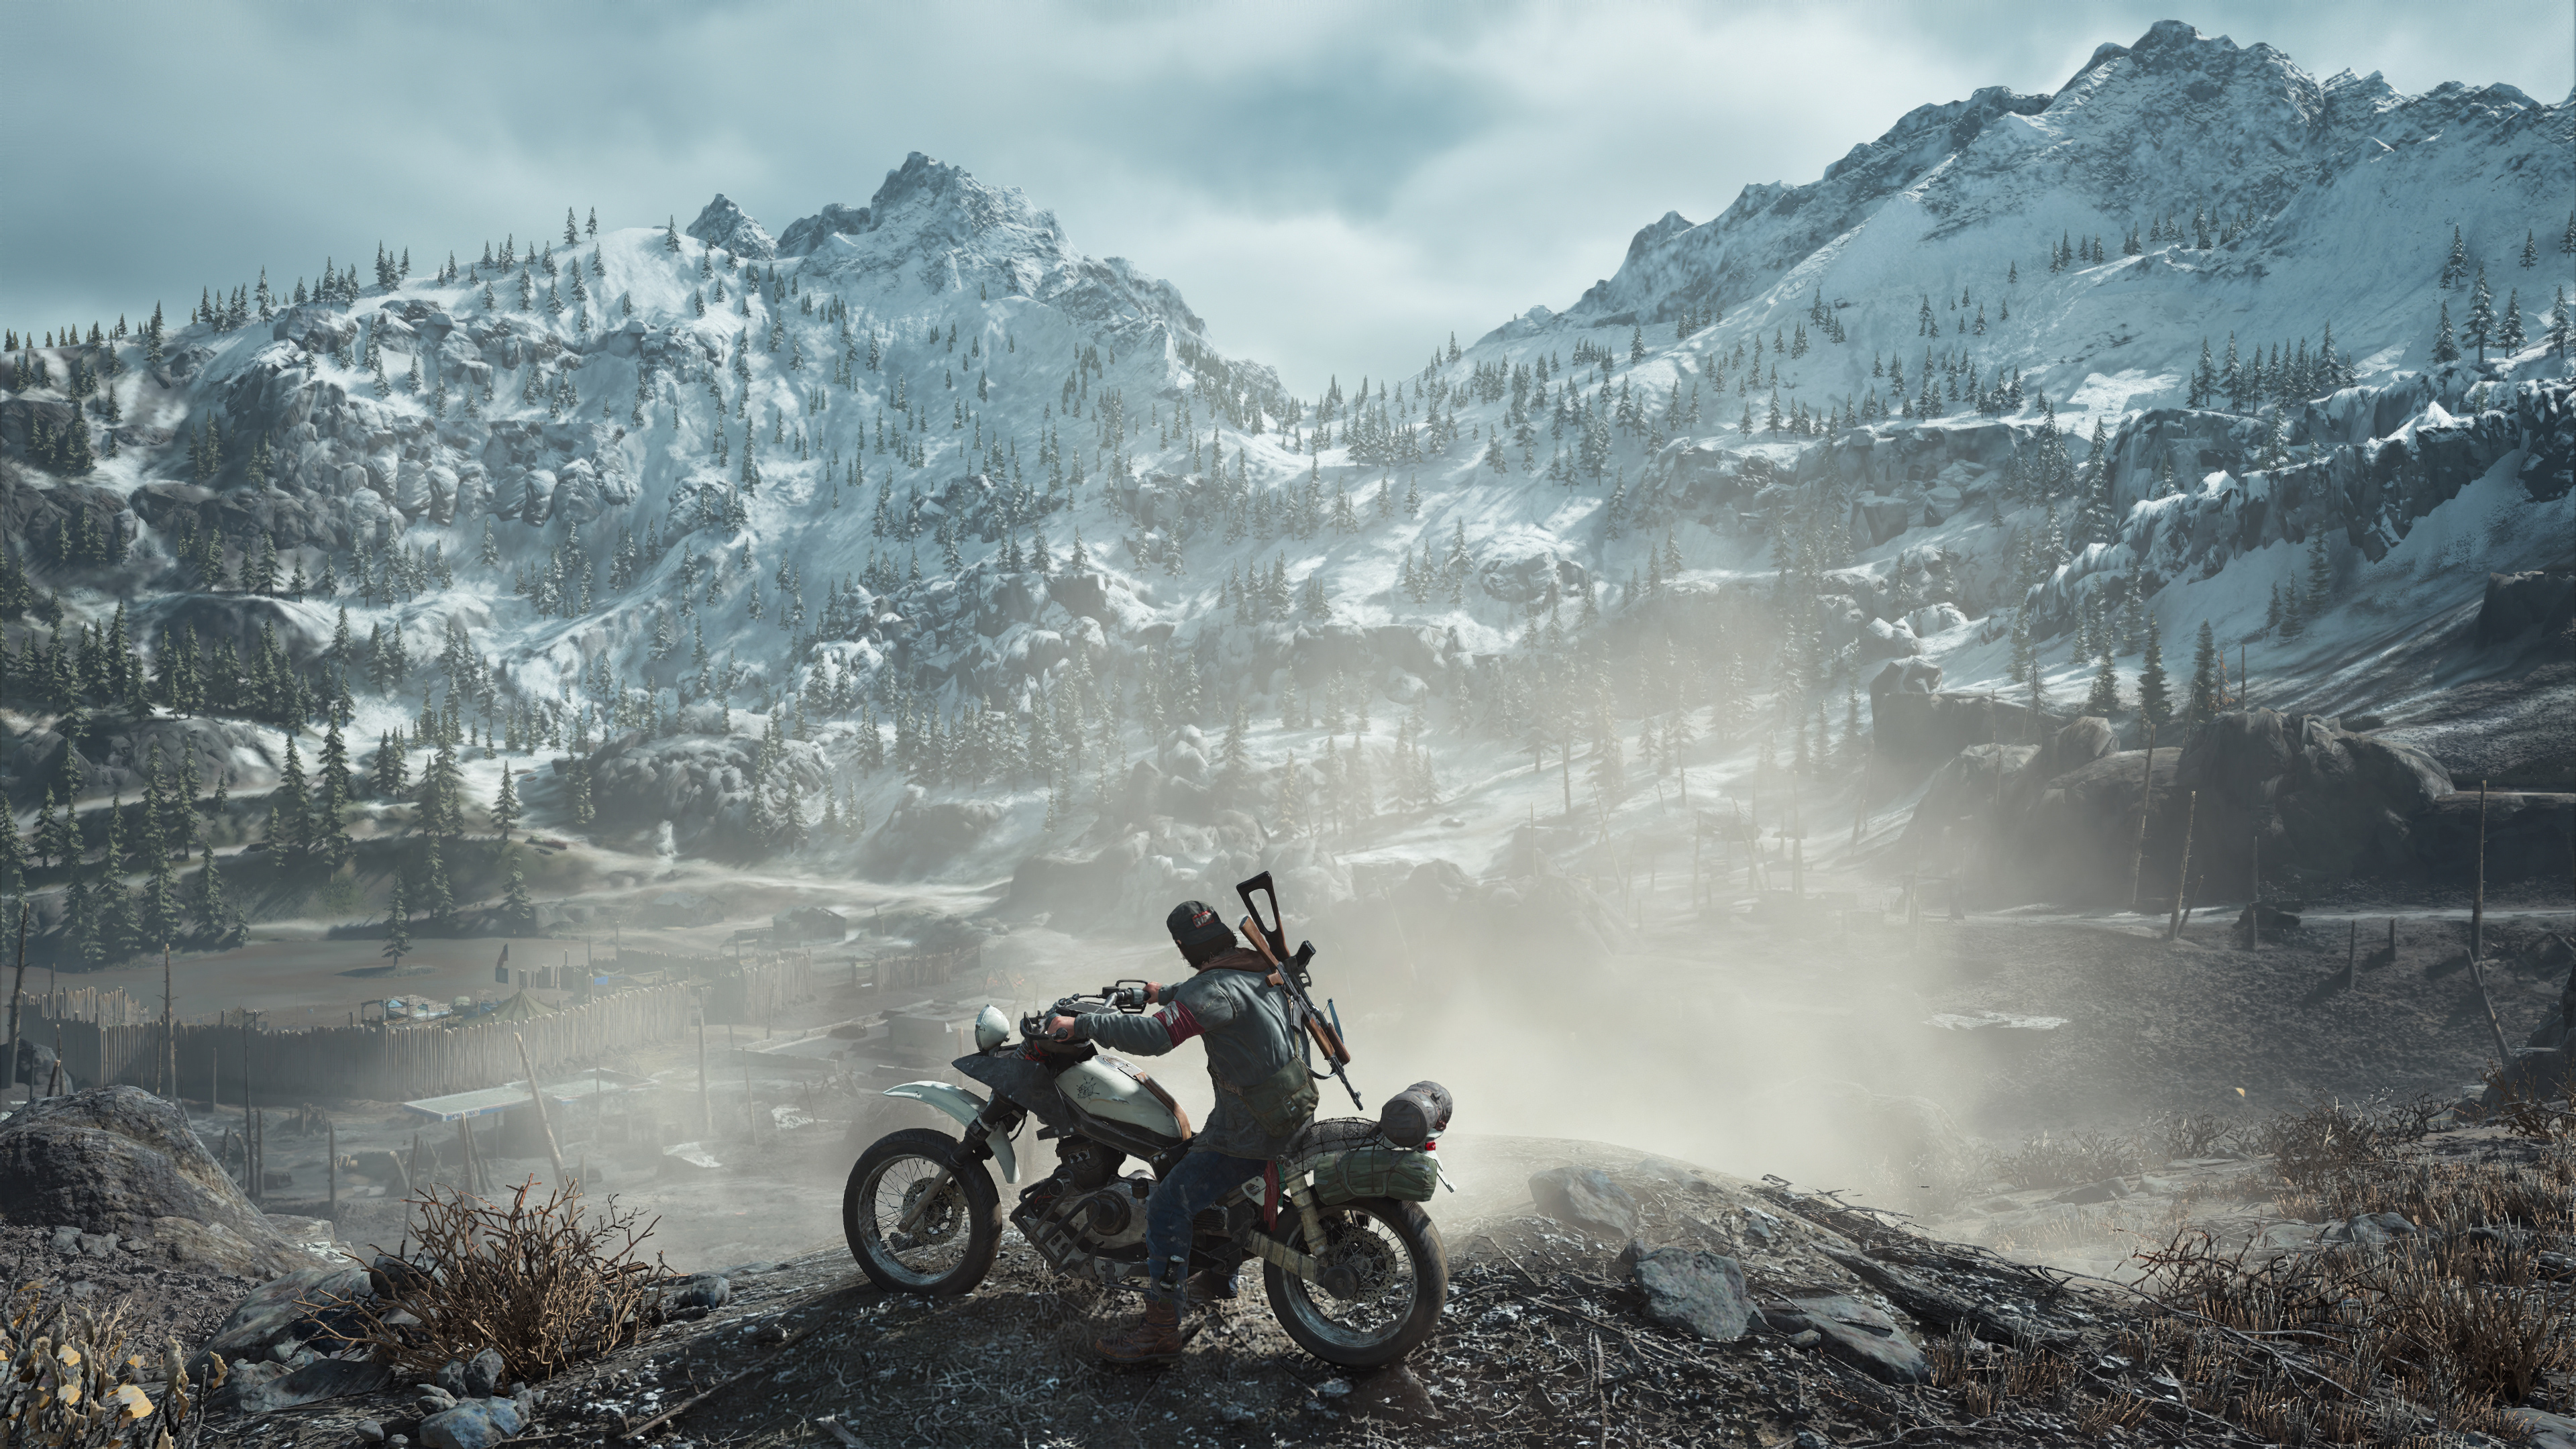 days gone biker 1578851379 - Days Gone Biker - Days Gone Biker game 4k wallpaper